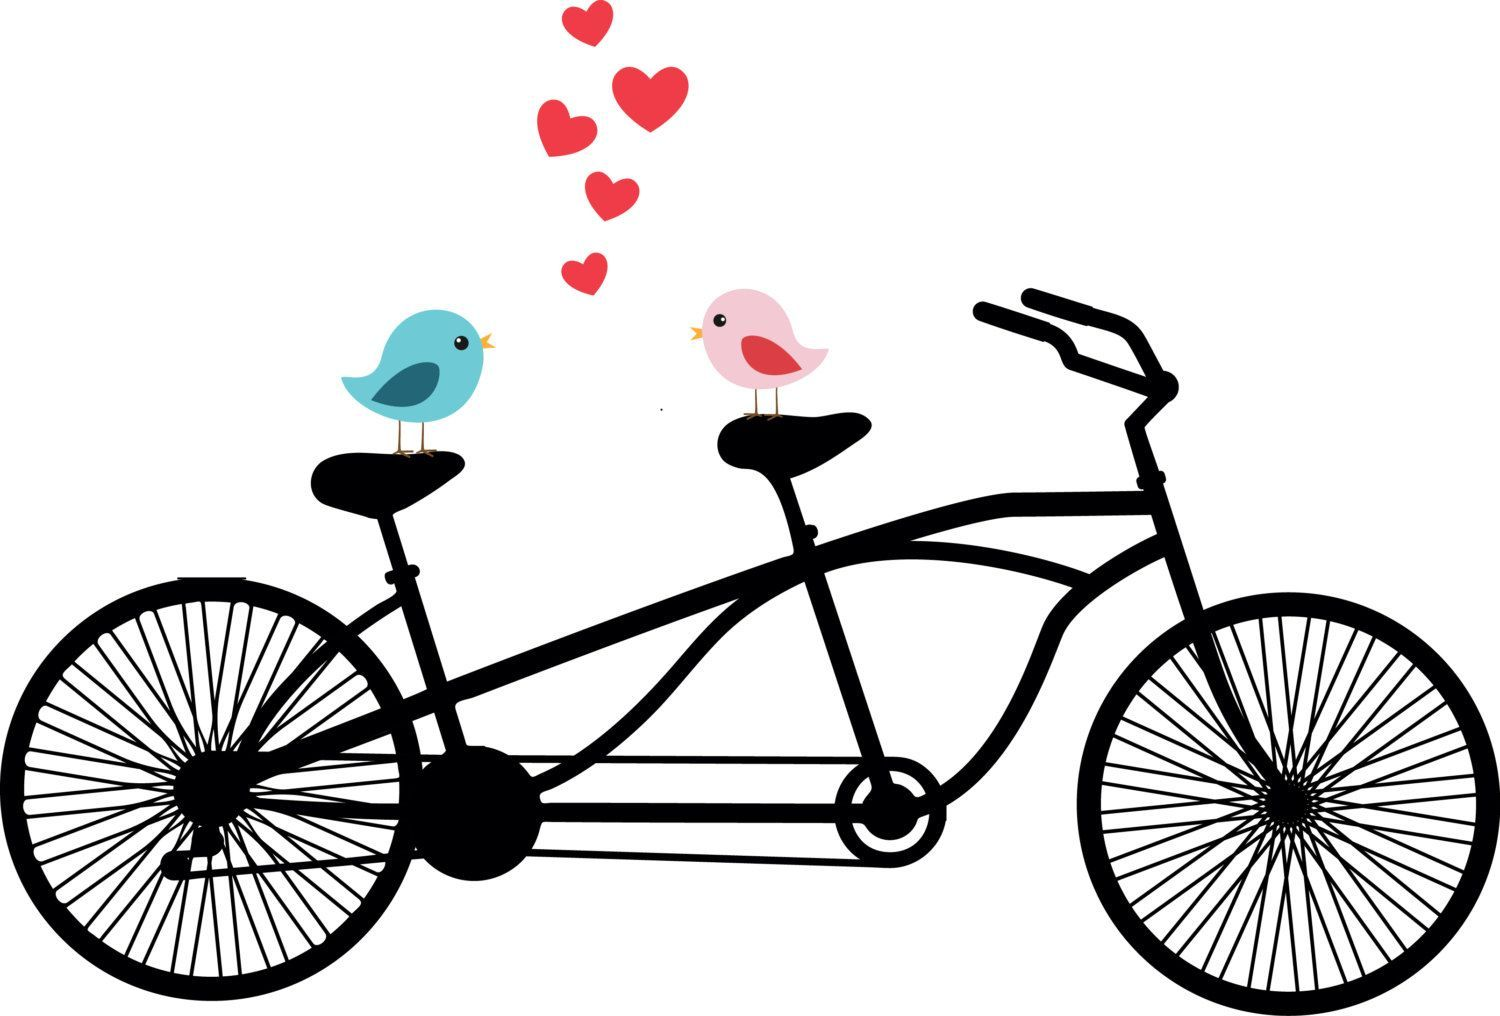 Tandem Bicycle Clipart, Love birds, Wedding invitation.